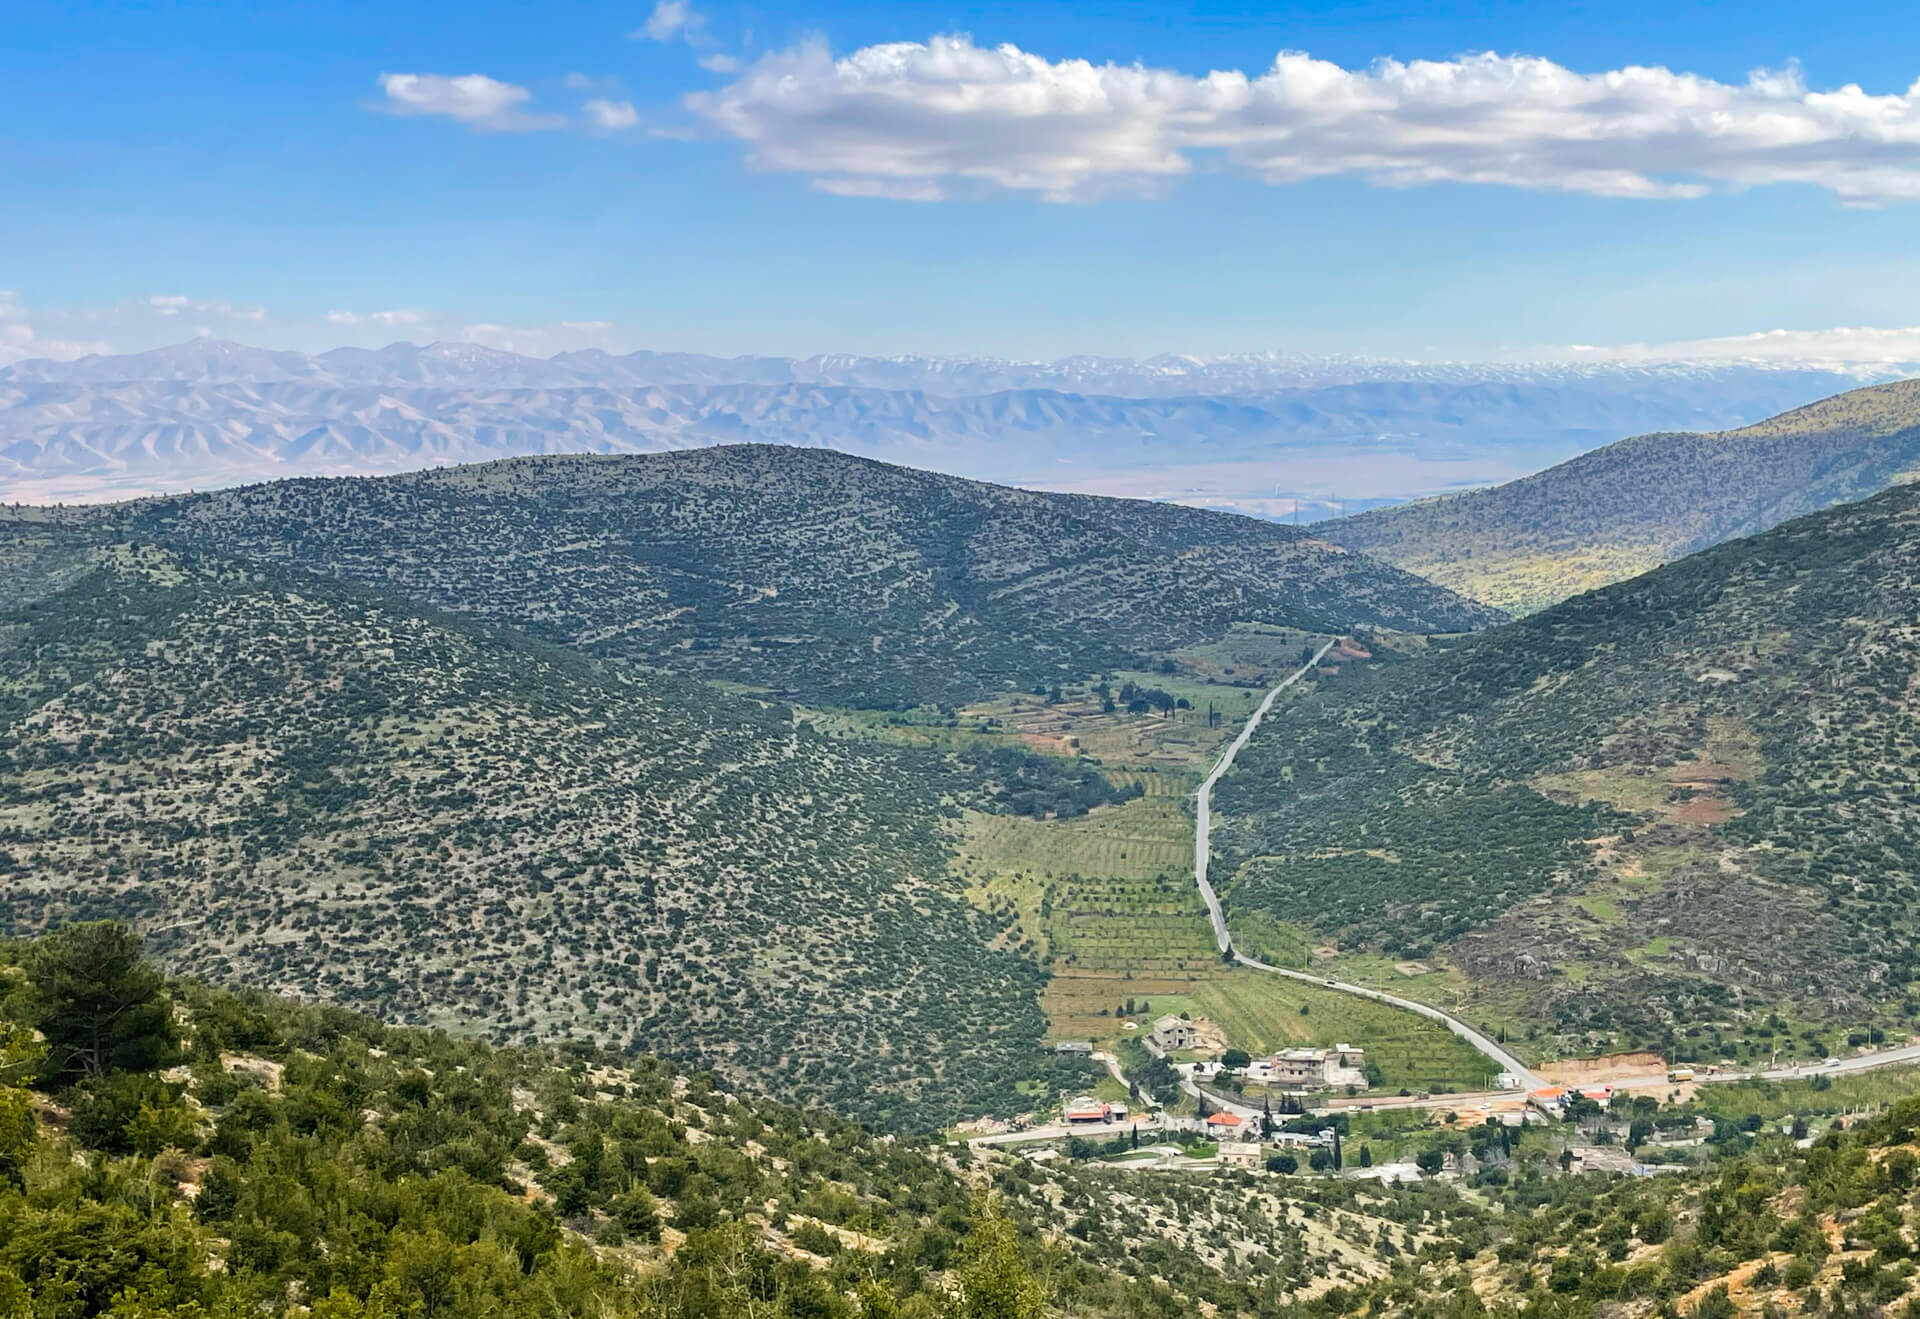 Looking down from mountains covered in lush vegetation towards the Bekaa valley.